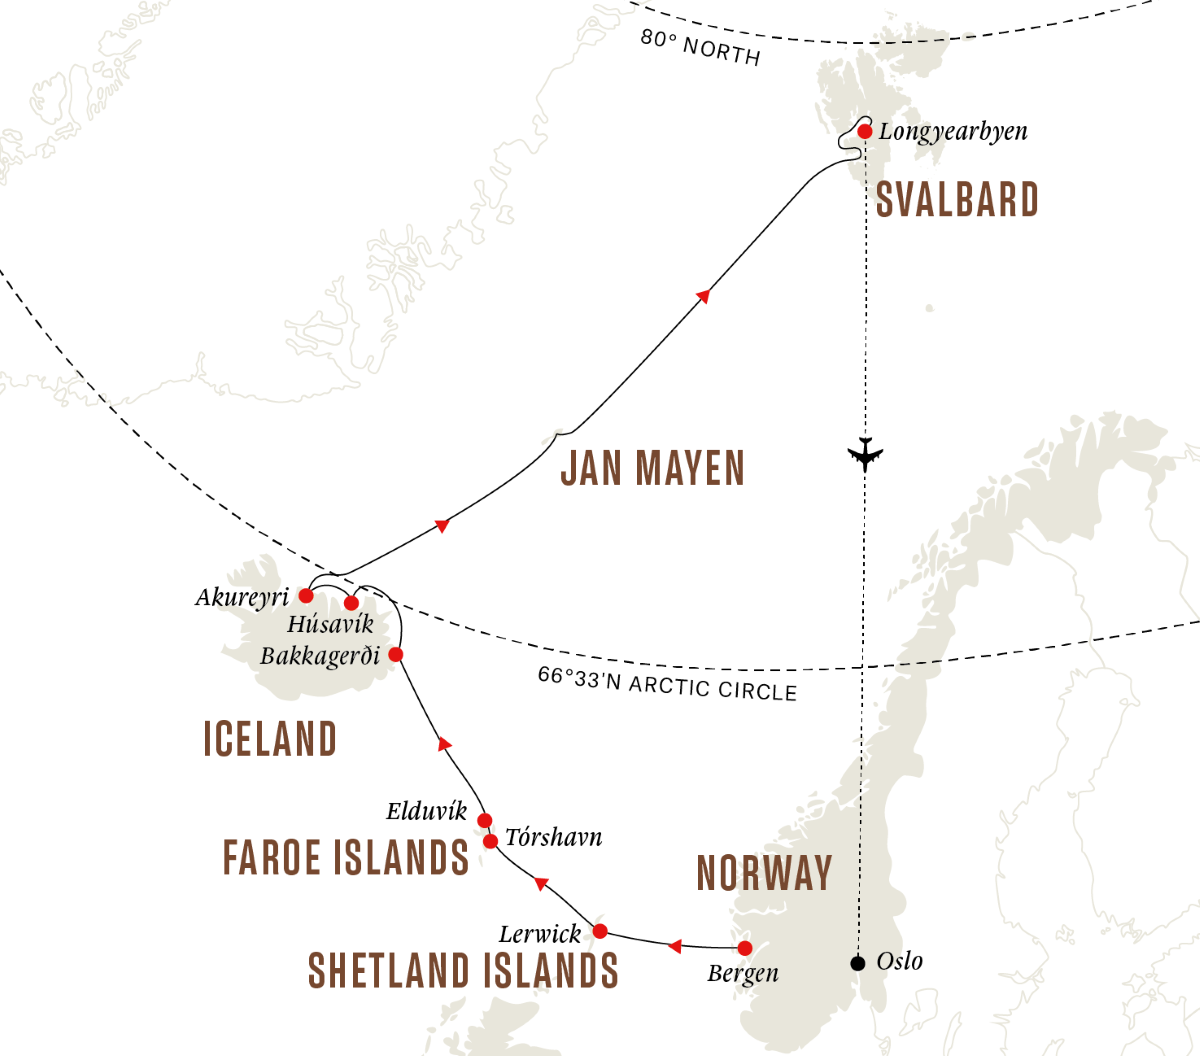 Faroe Islands, Iceland, Spitsbergen – Island Hopping In and Around the Arctic (Northbound)